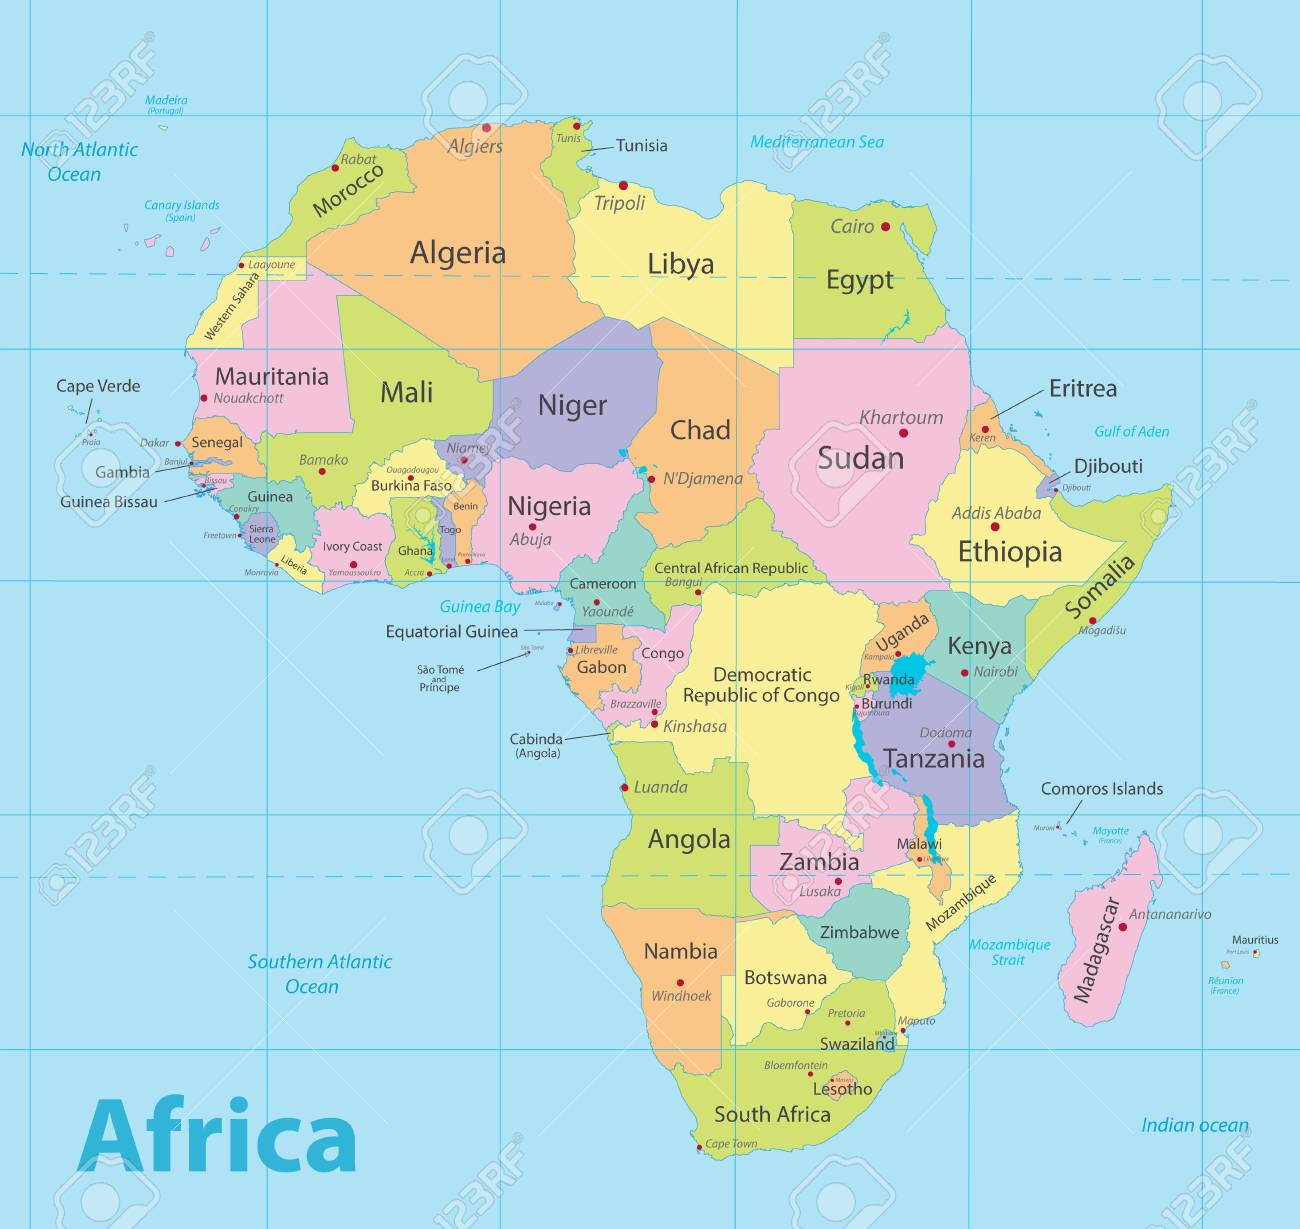 Map Of Africa States on map of the east coast states, map of western region states, map of benelux states, map of australia states, map of west region states, map of north usa states, map of america's states, map of states civil war, map italy states, map of western u.s. states, map of israel states, map of southeastern usa states, map of connecticut states, map of former soviet union states, map of middle east states, map of cambodia states, map of world states, map of u.s.a states, map of indochina states, map malaysia states,